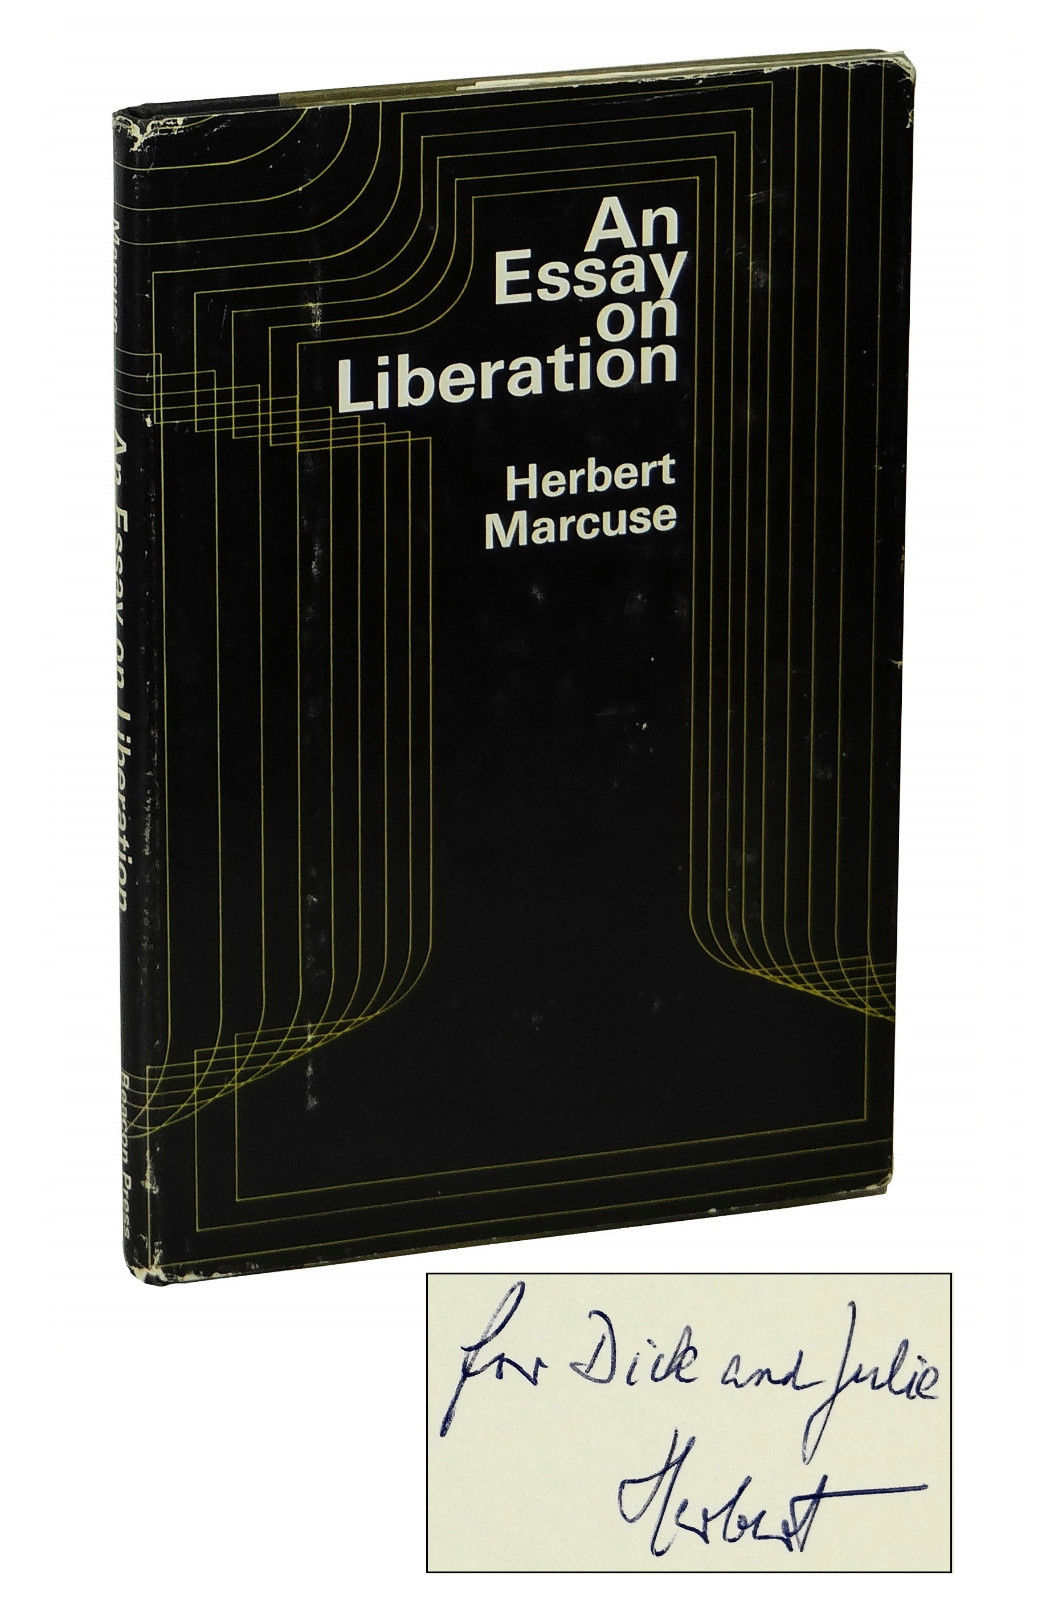 an essay on liberation herbert marcuse first edition an essay on liberation